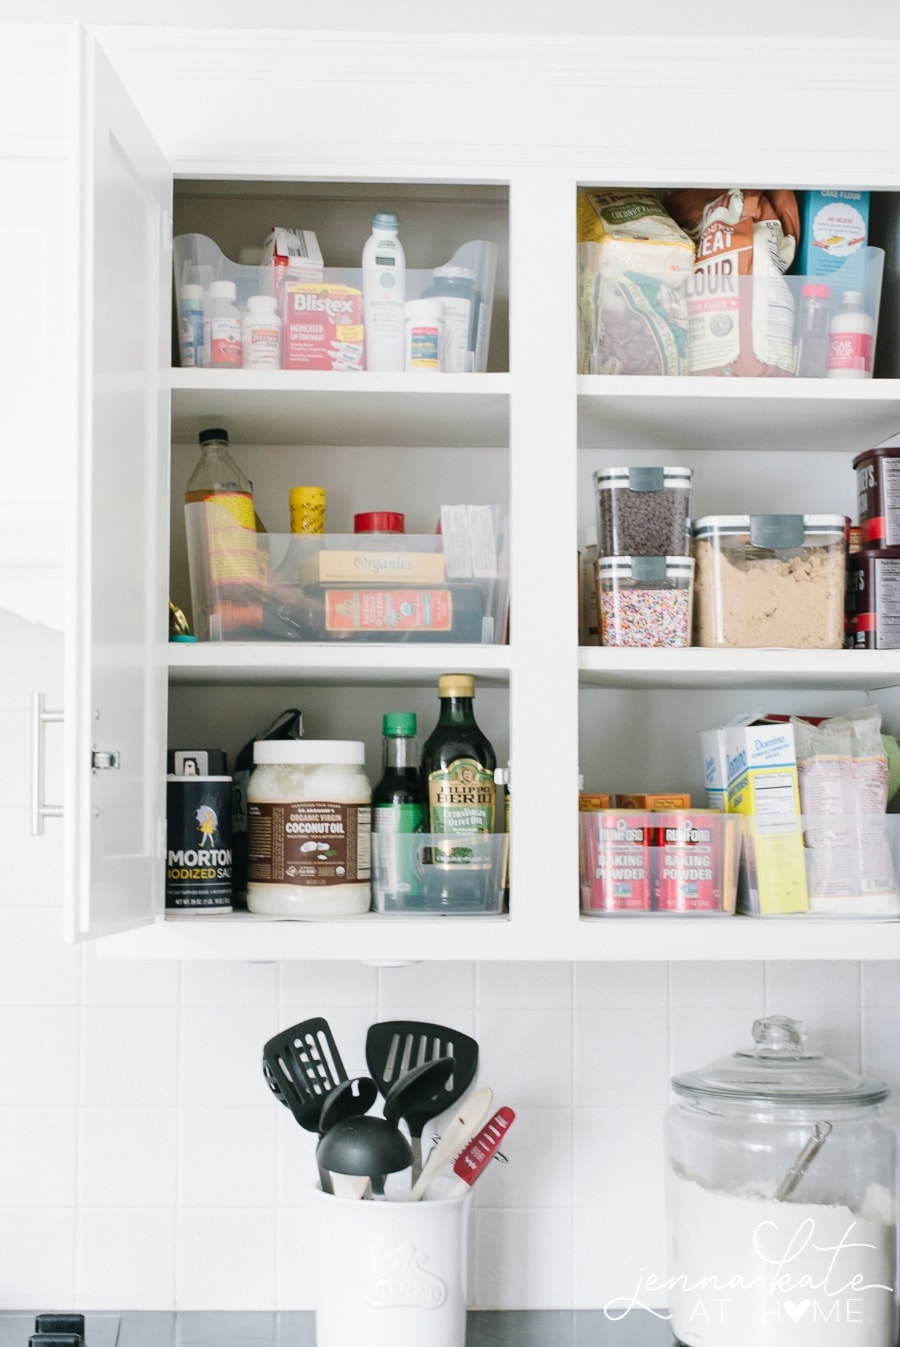 How to organize baking and cookies supplies in kitchen cabinets